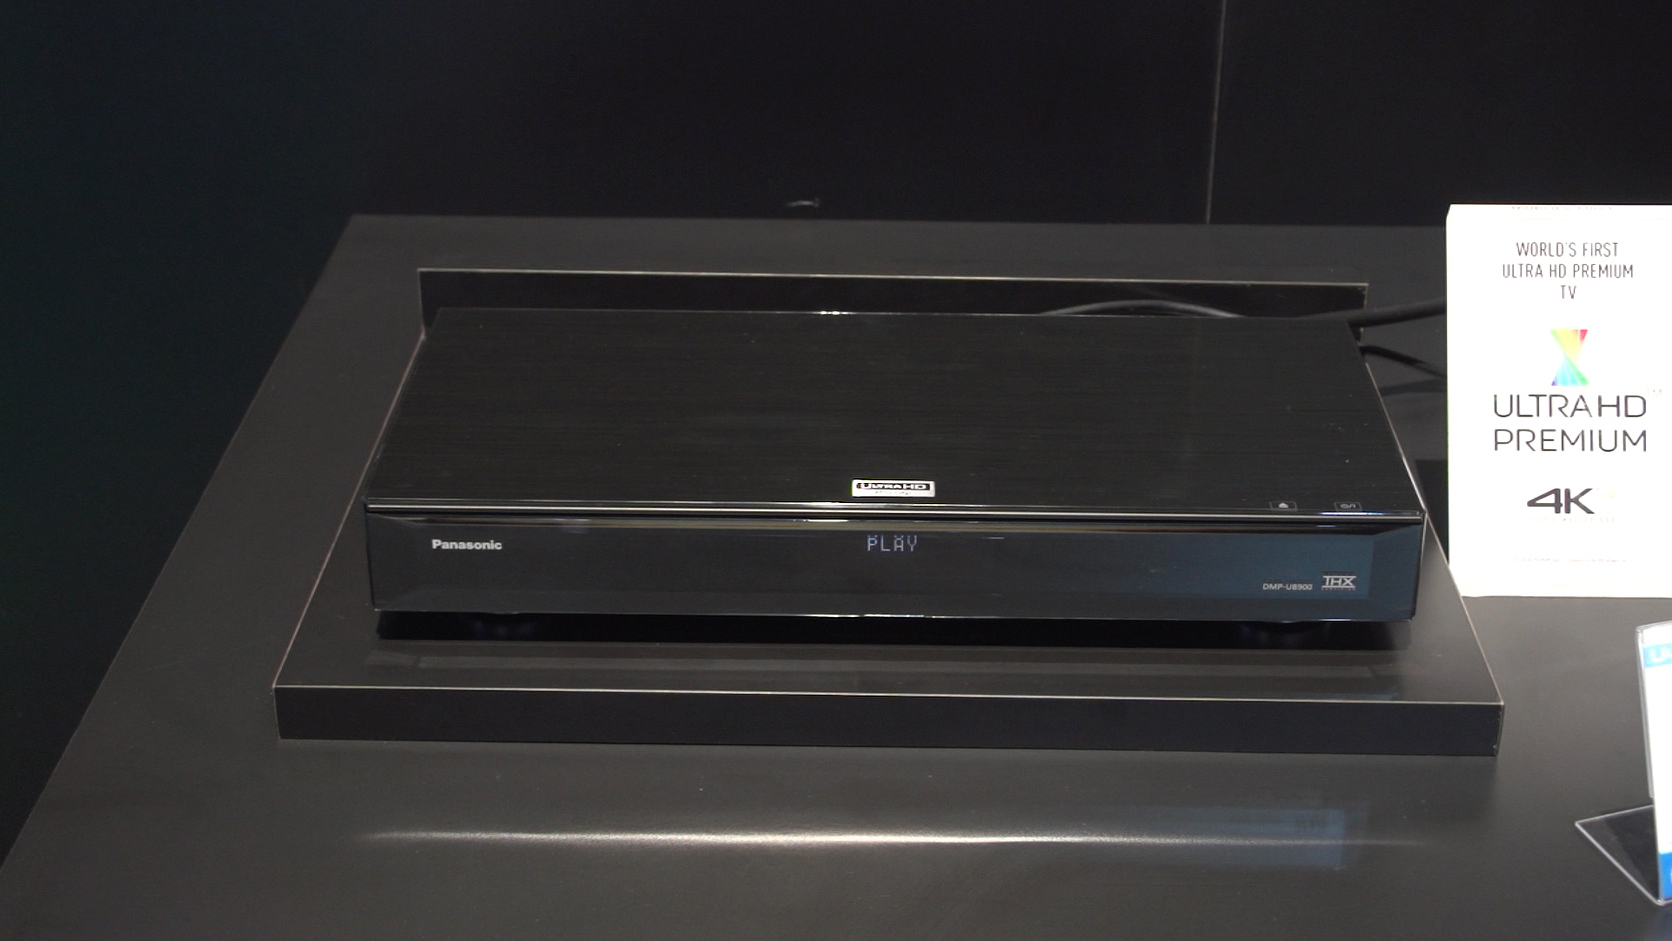 Video: Panasonic bows 4K Blu-ray player